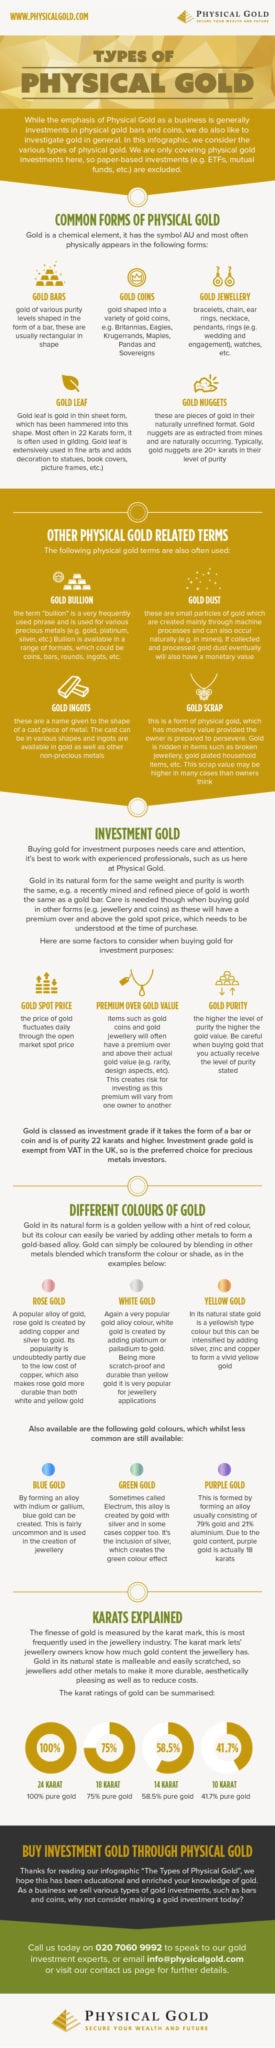 Types of gold